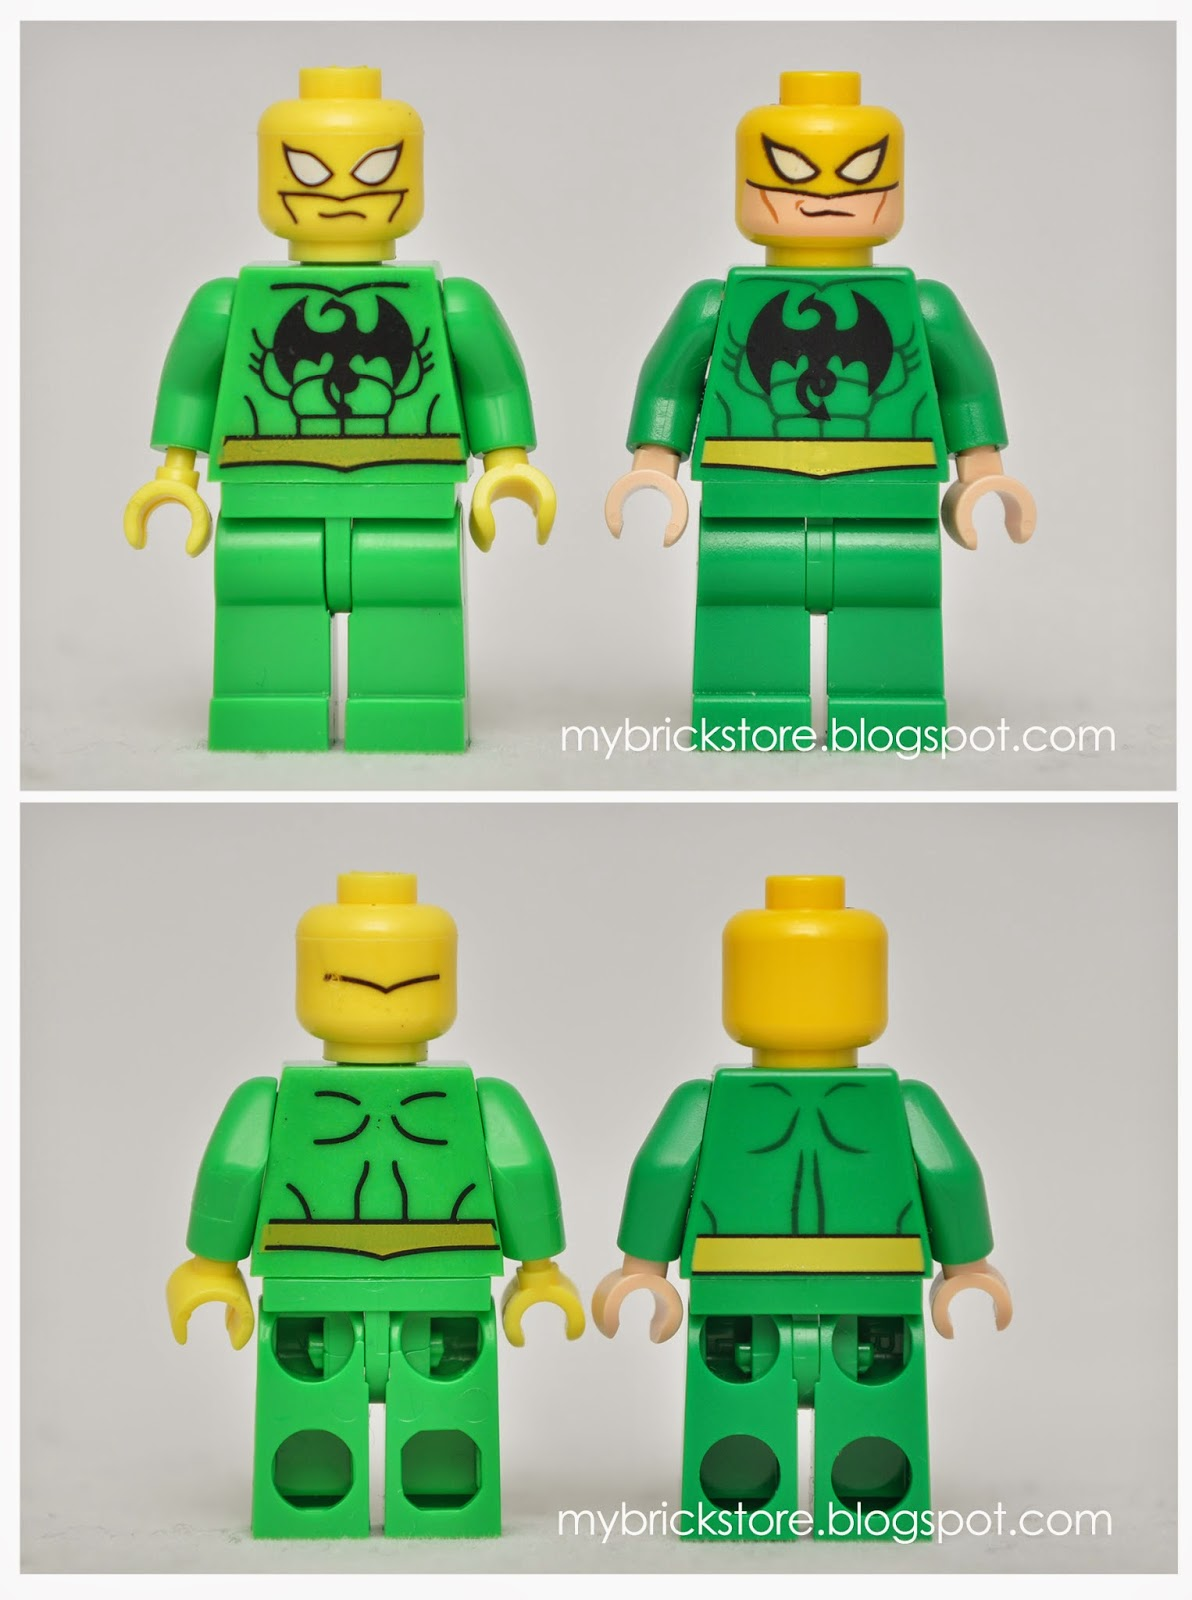 Lego Marvel Superheroes Iron Fist i Have Original Lego Iron Fist